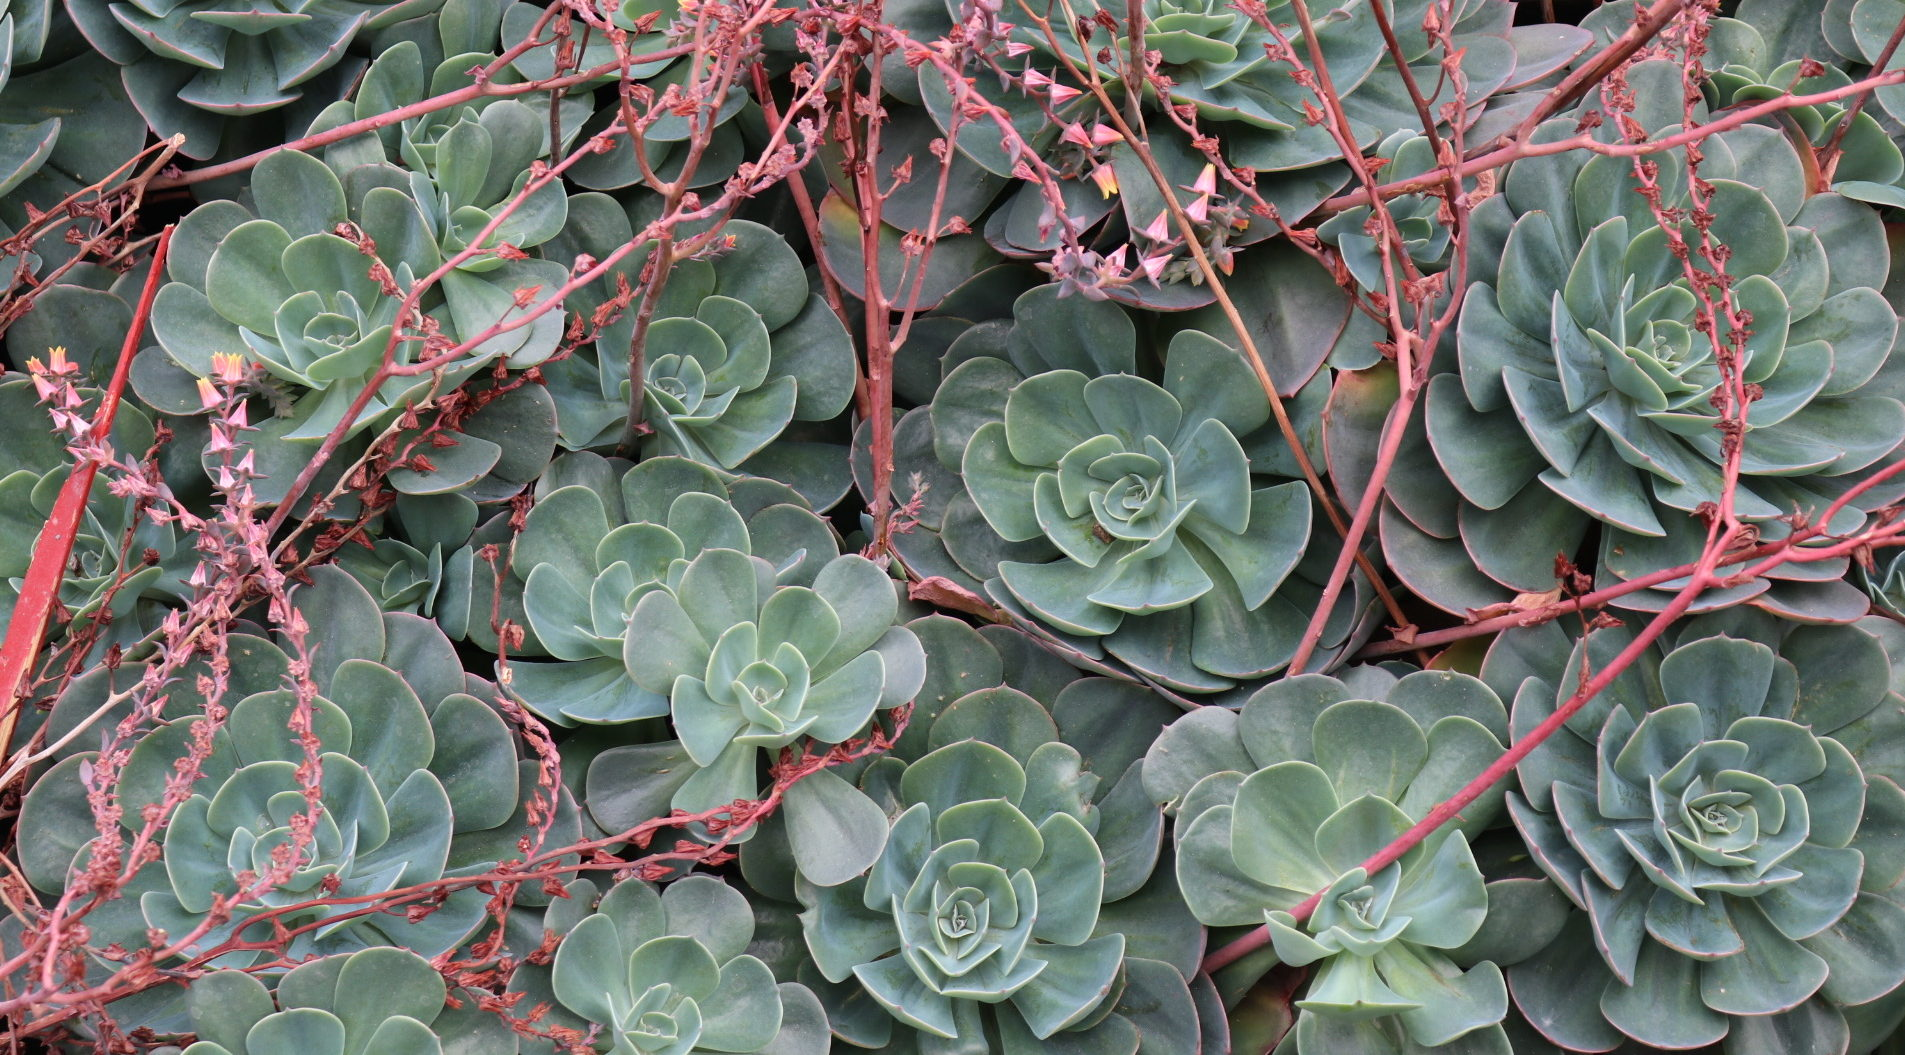 Green Succulent Plants with Red Shoots